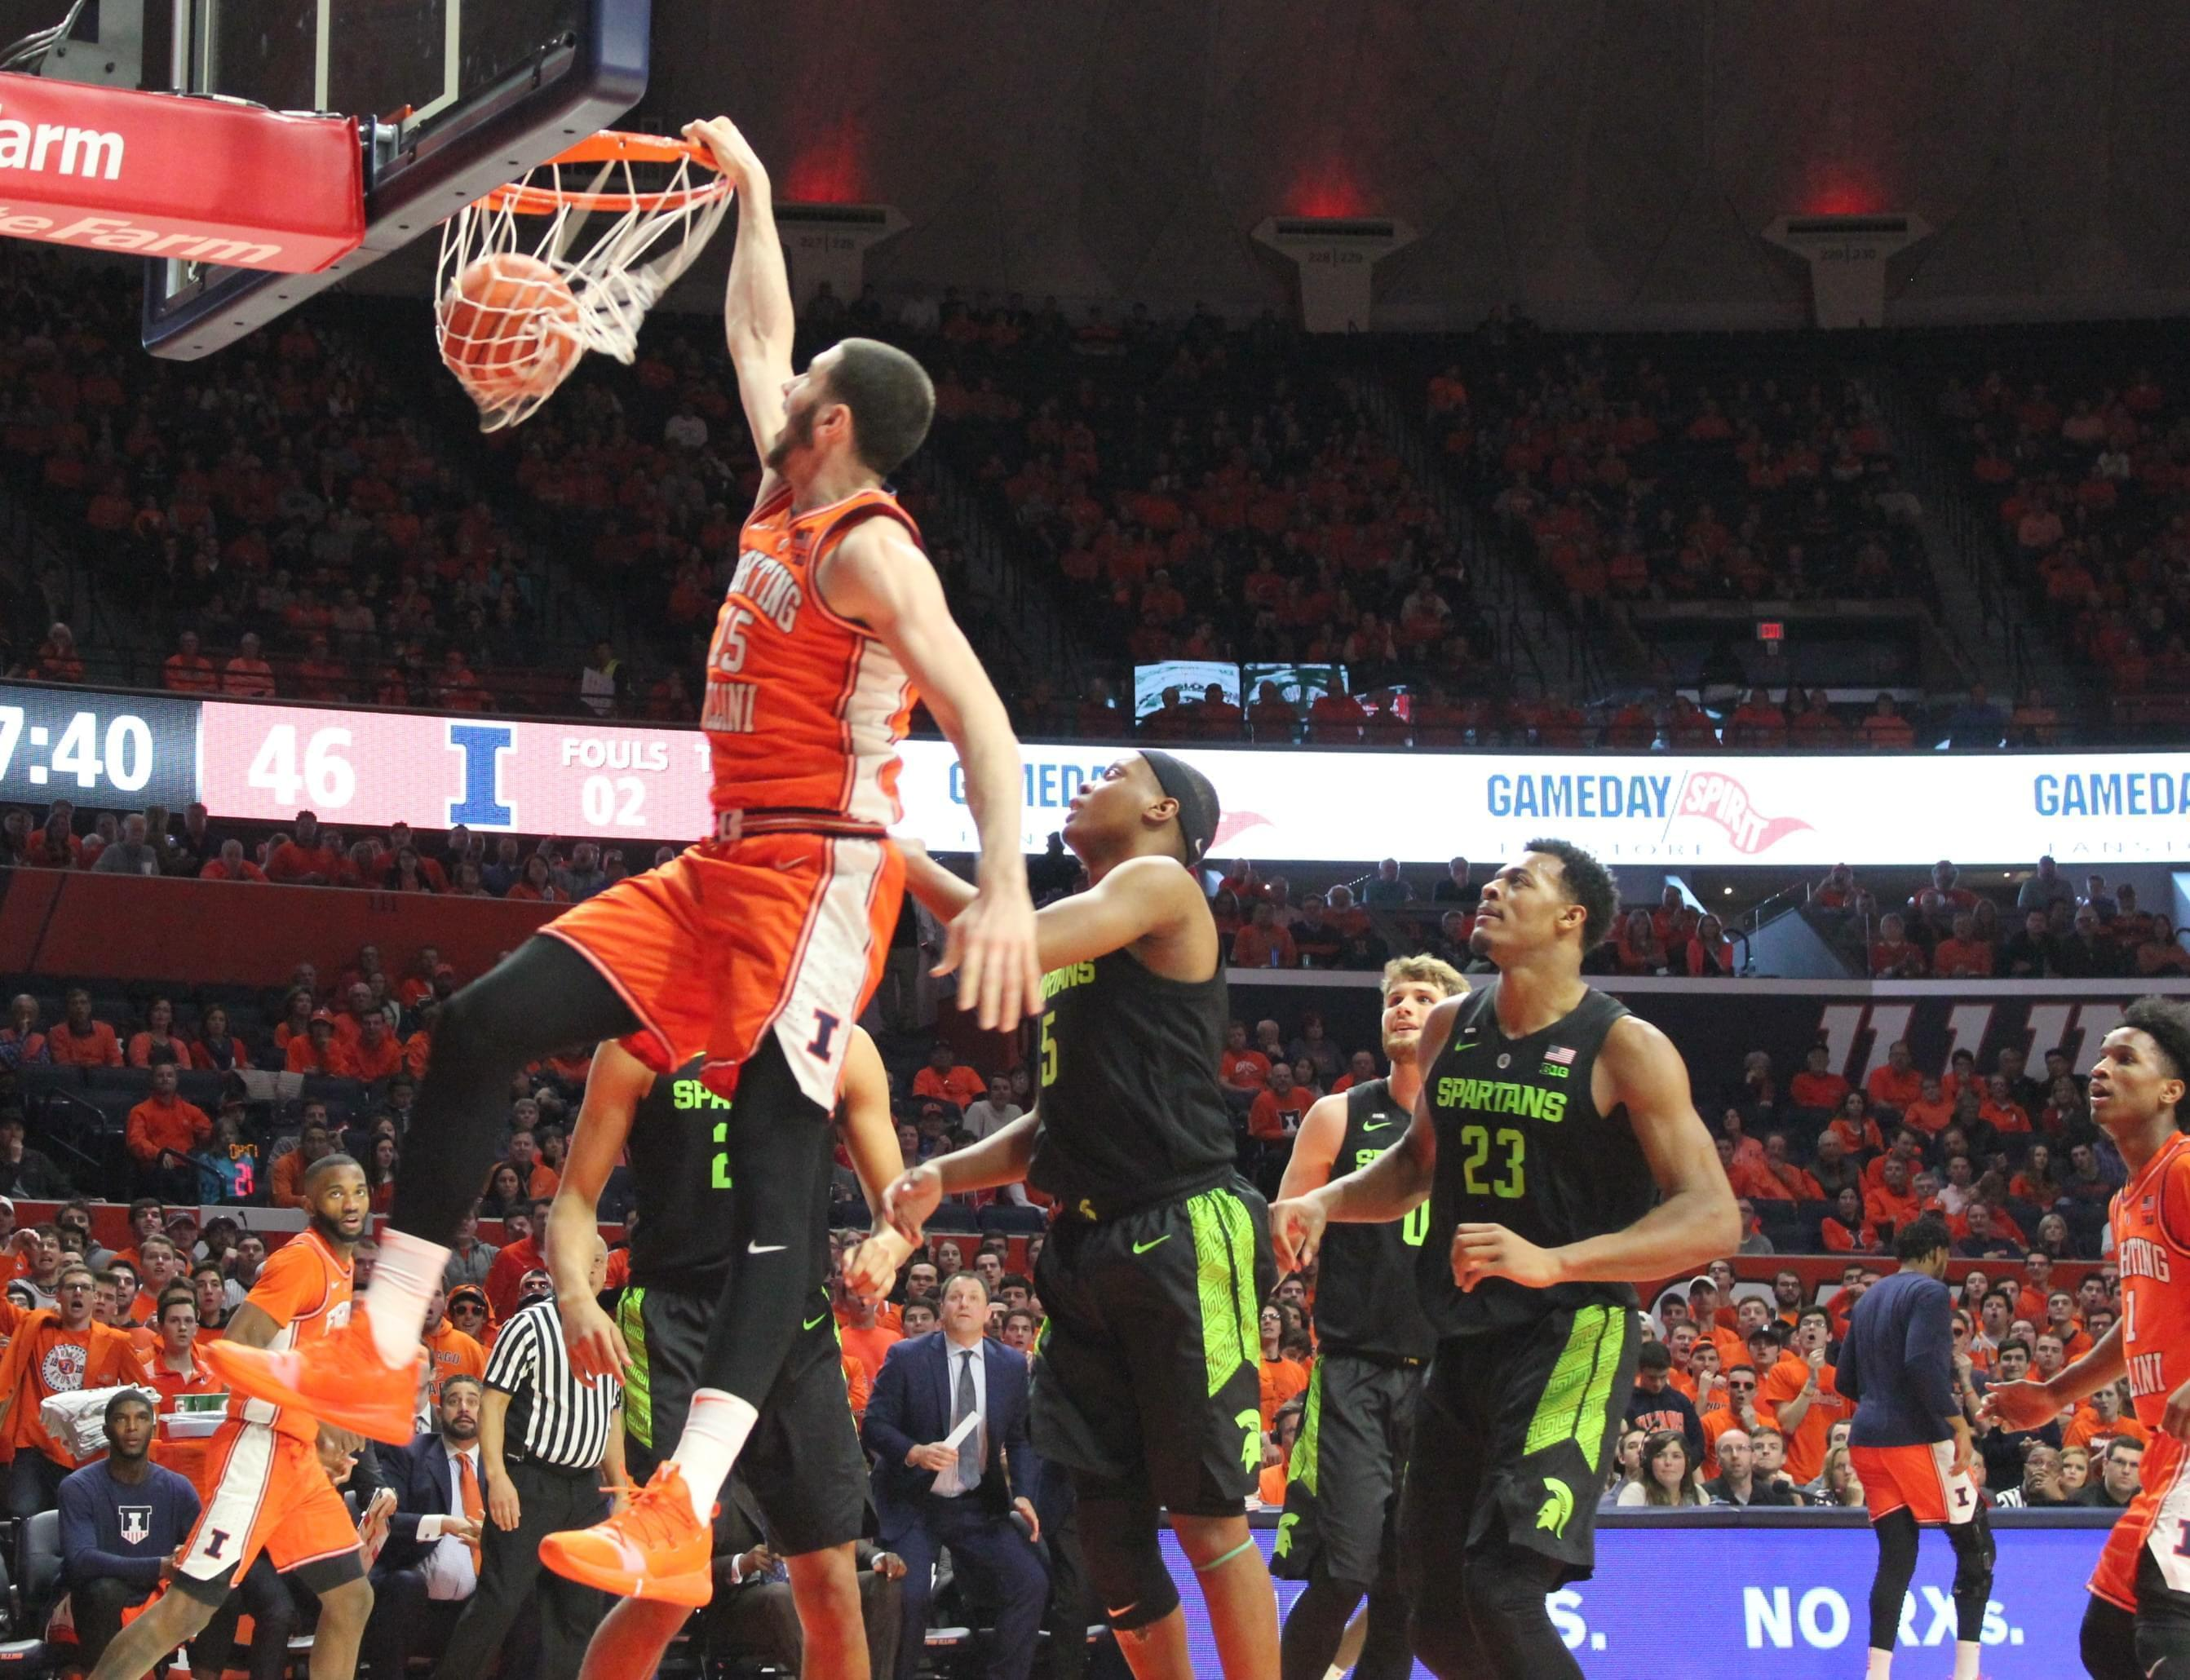 Illinois freshman Giorgi Bezhanishvili slams home two points during Illinois' 79-74 win over #9 Michigan State Tuesday night in Champaign.